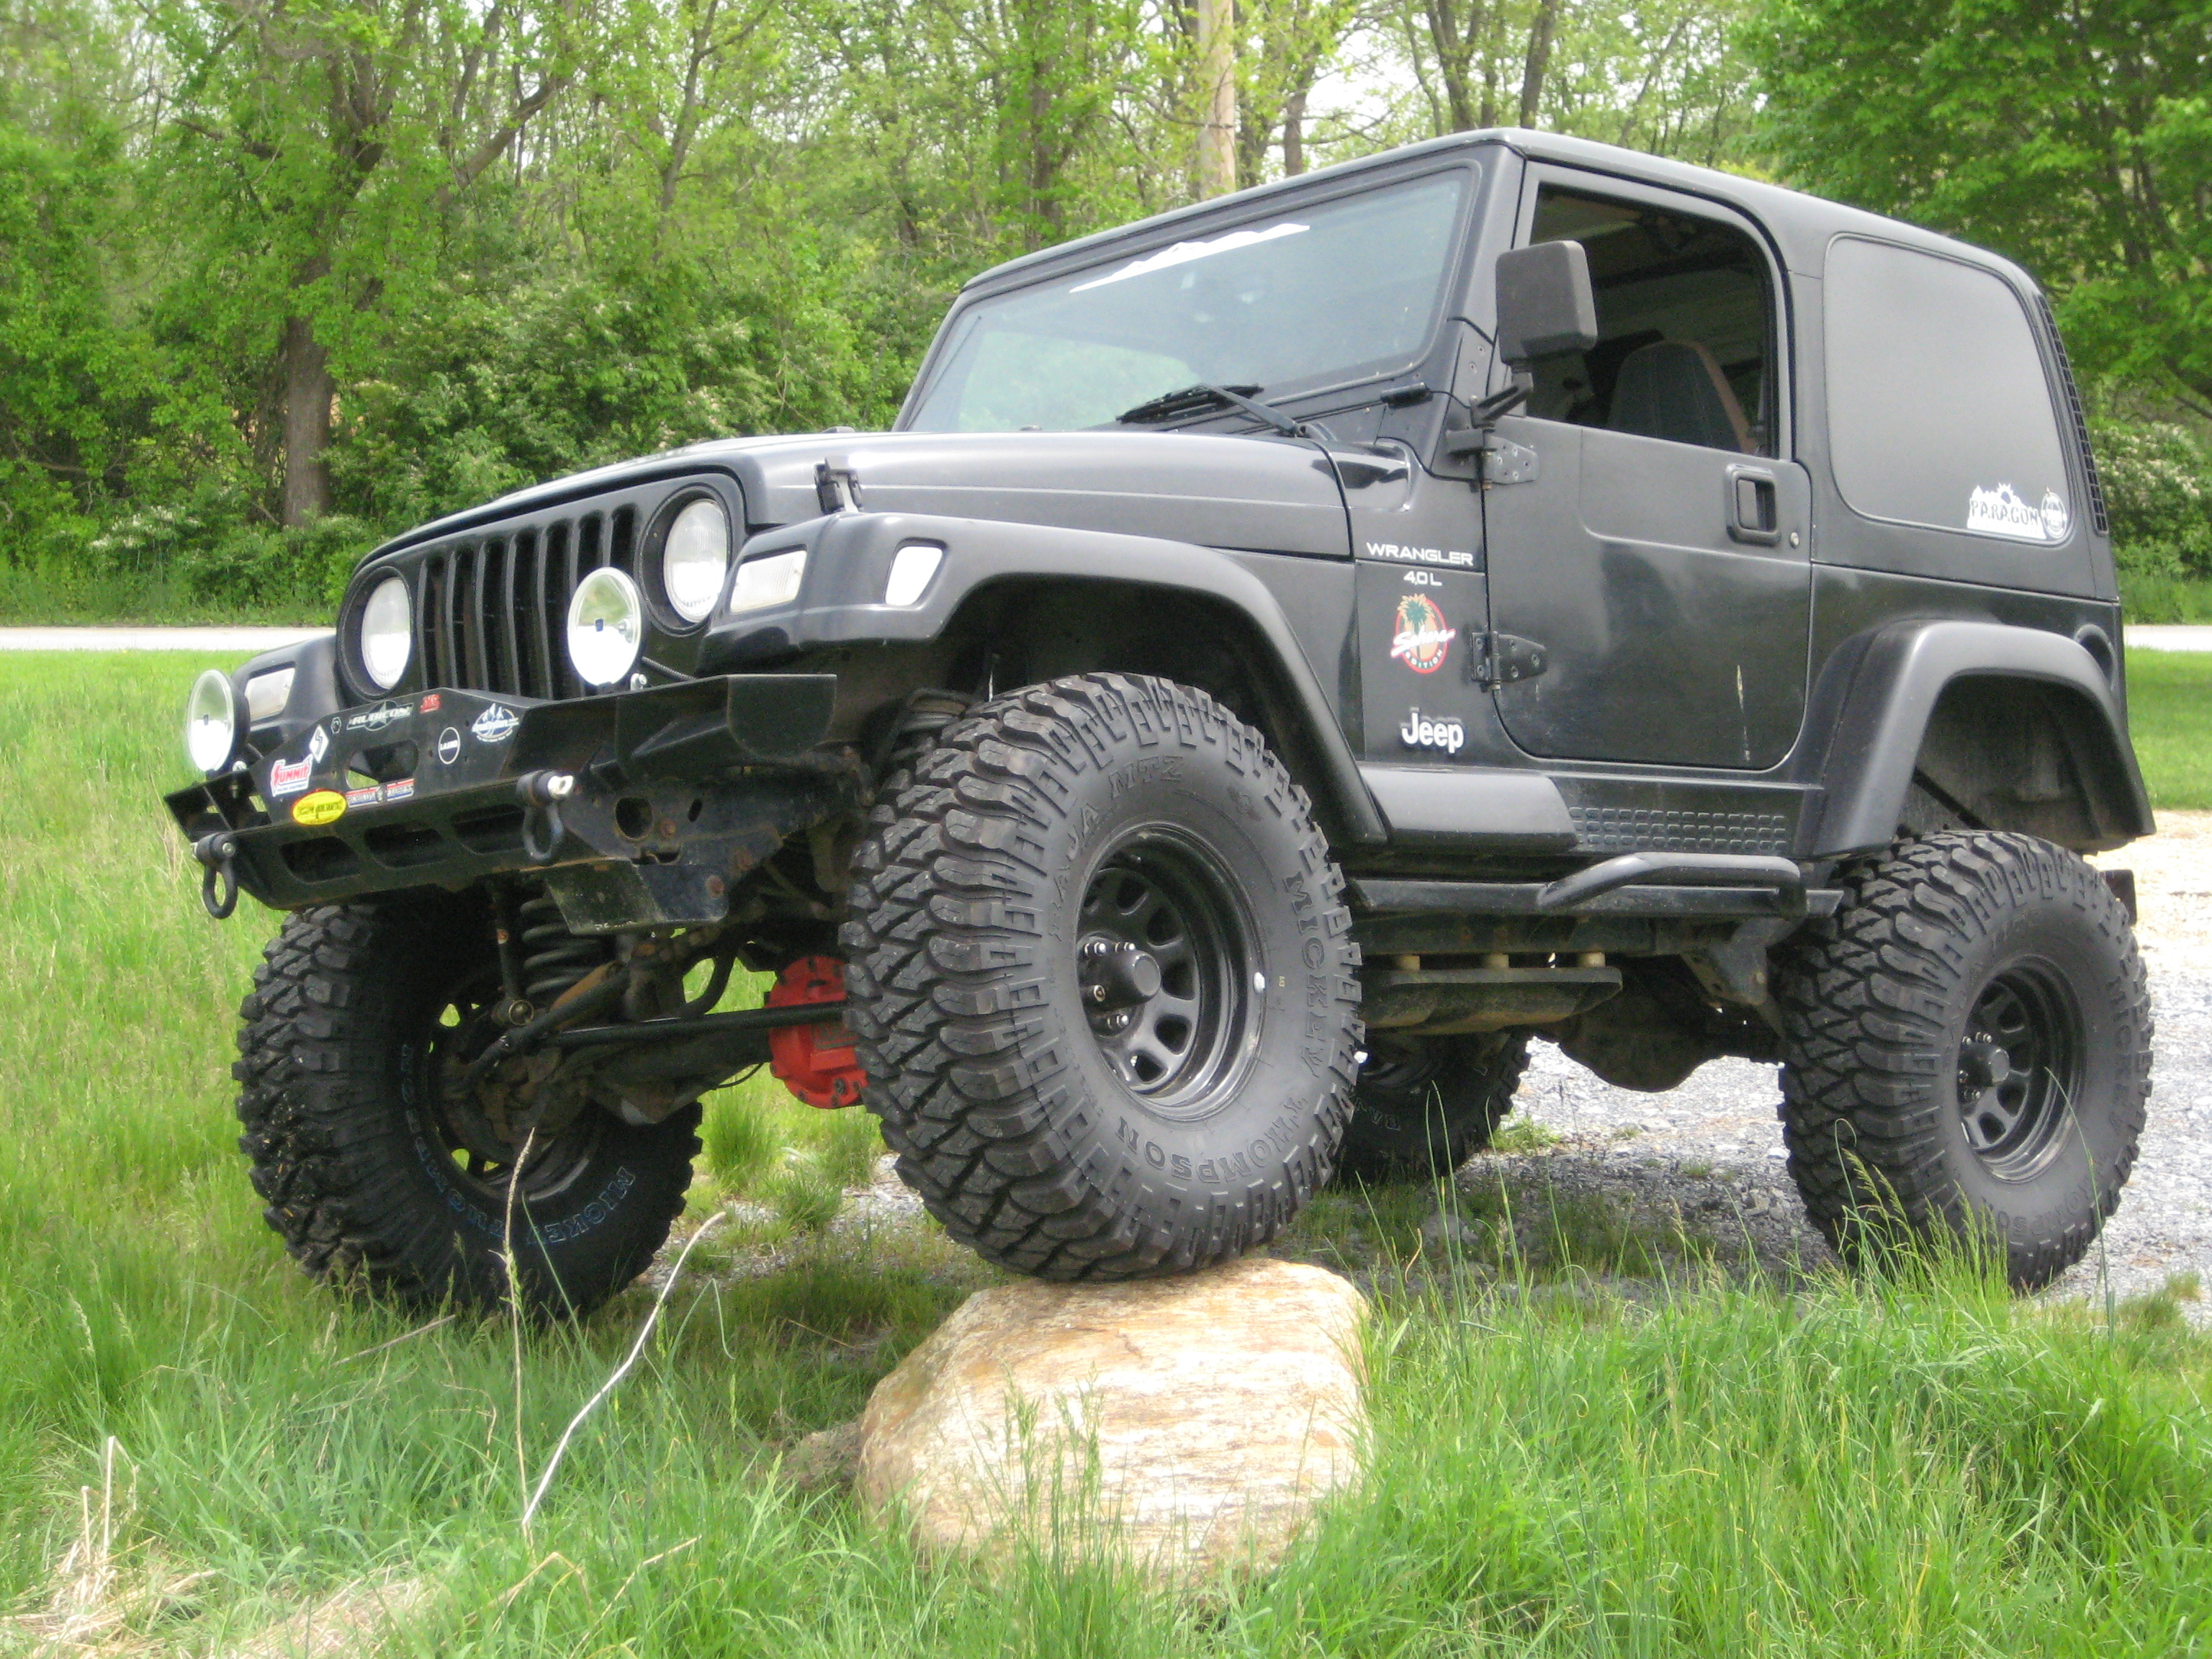 Liftedsahara's 2000 Jeep TJ in West Chester, PA